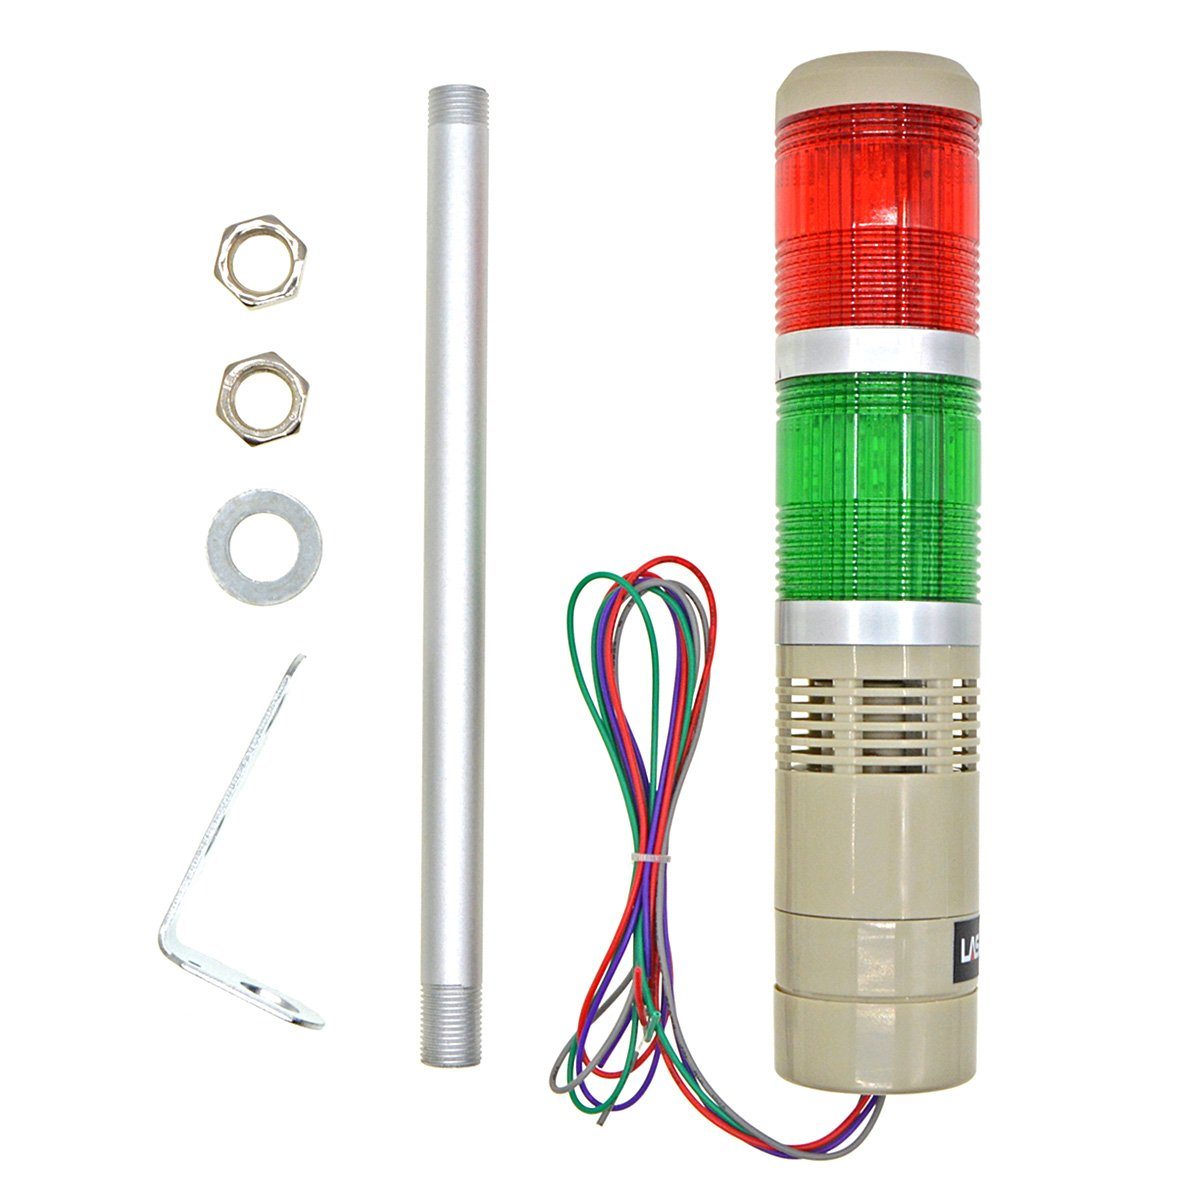 YXQ Industrial Signal Light DC 24V LED Red Green Alarm Tower Bulb Indicator Continuous Lamp Warning light Buzzer